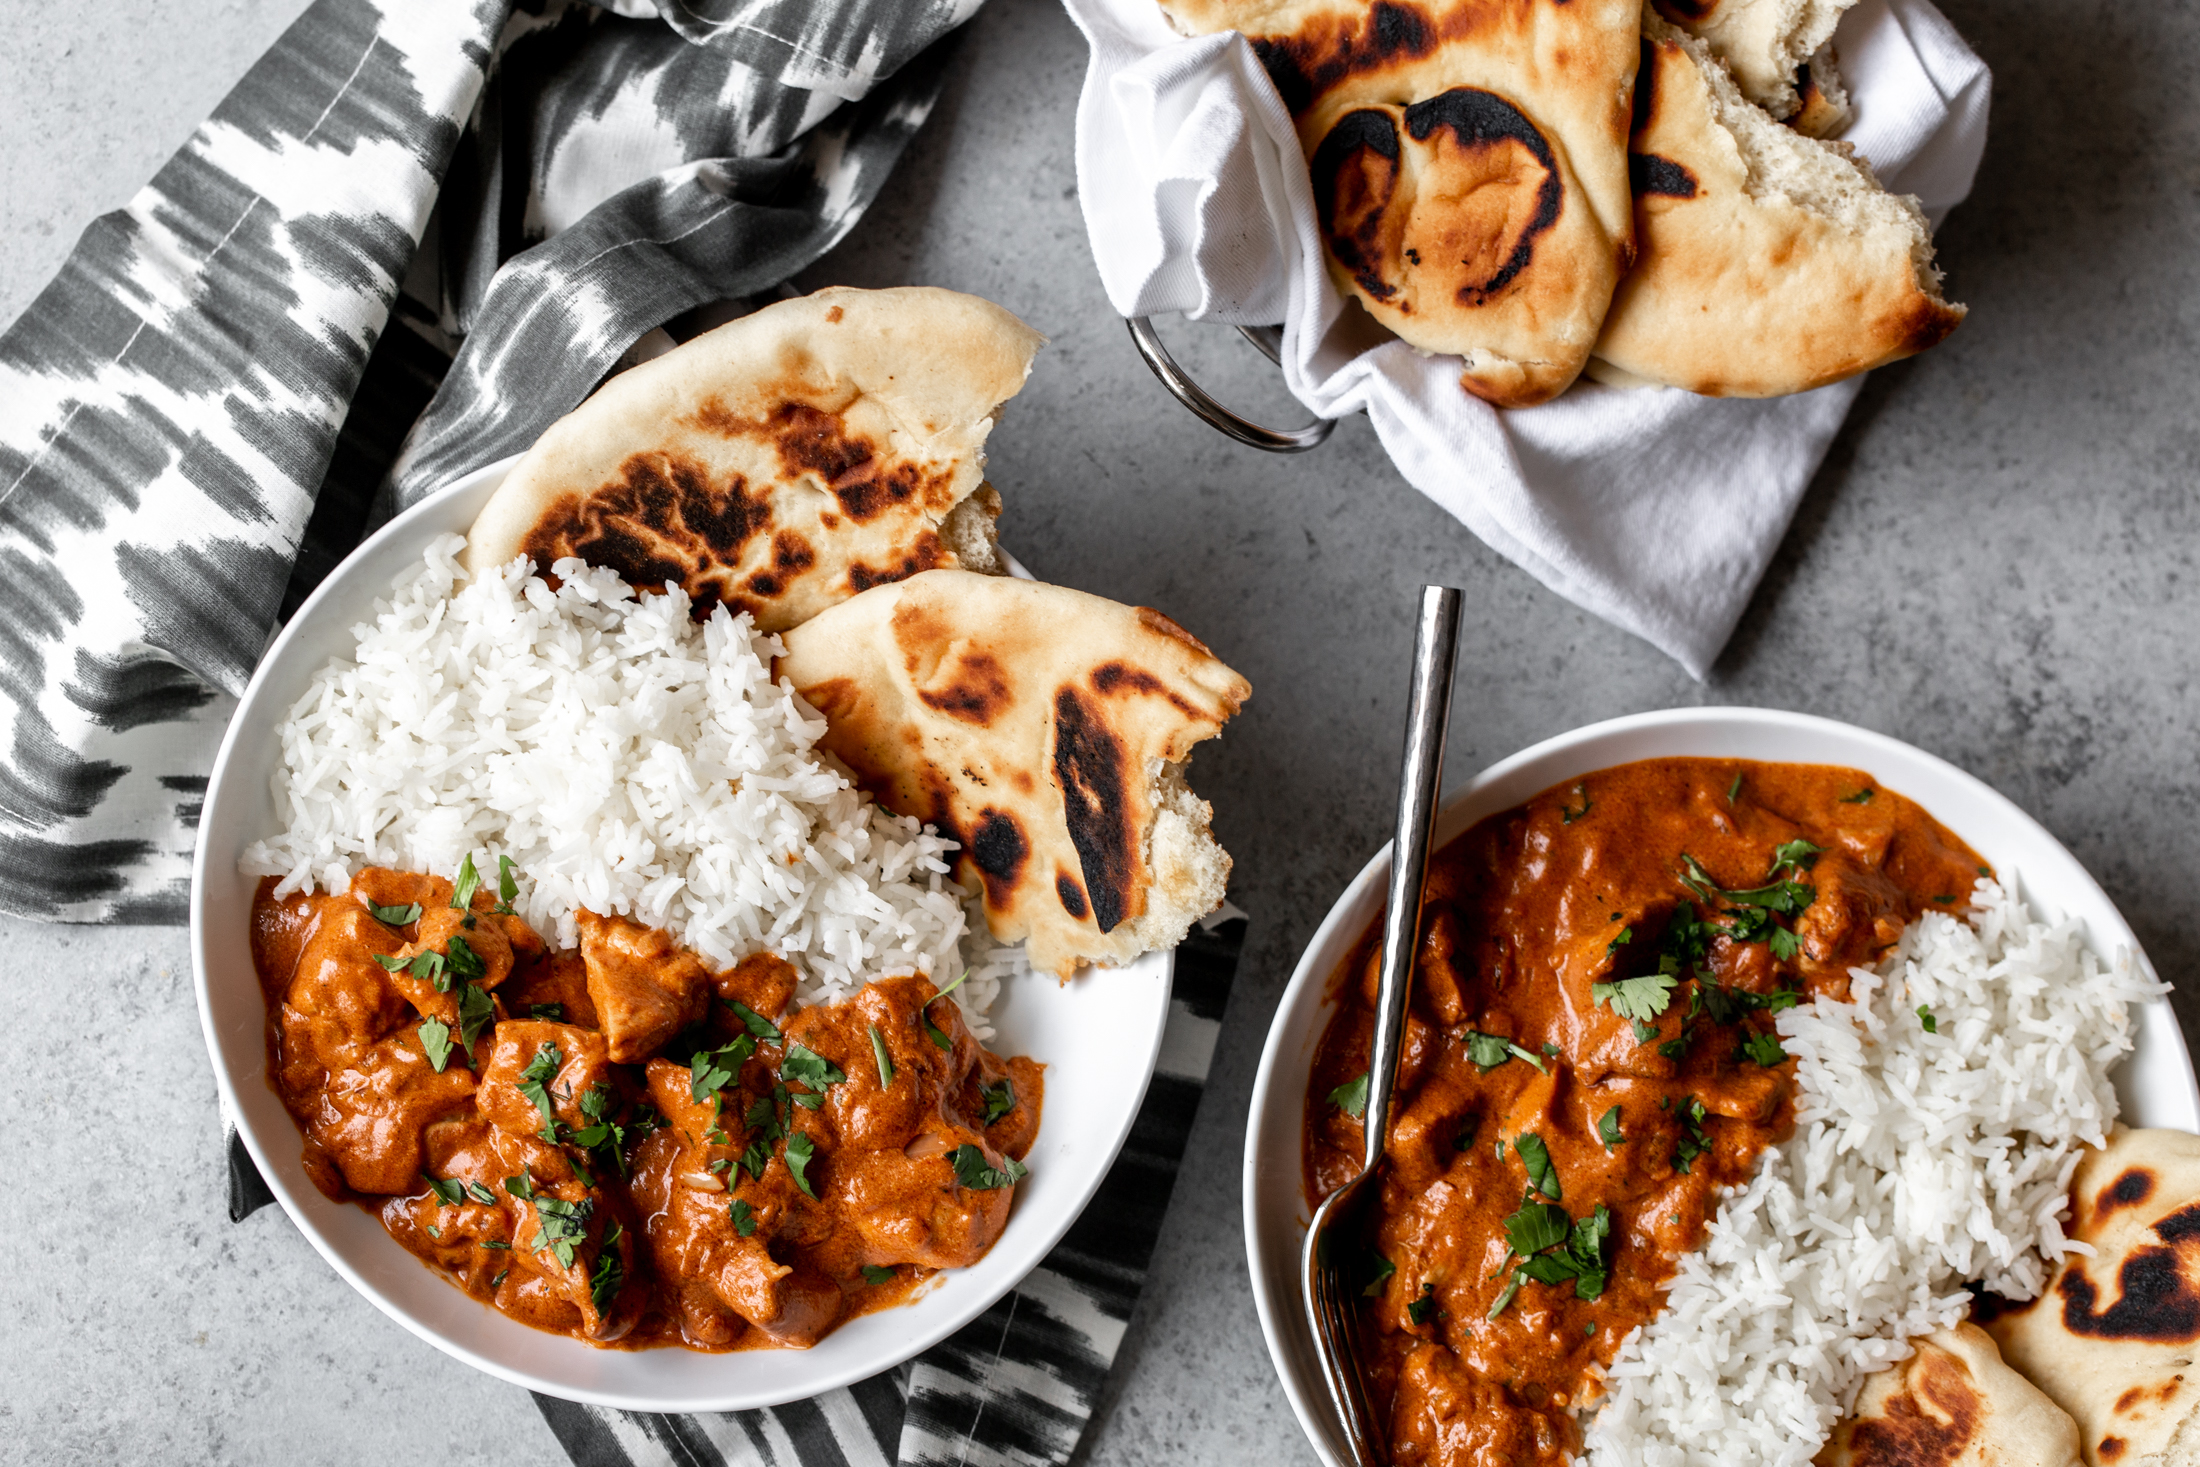 Indian Butter Chicken (Murgh Makhani) recipe from cooking with cocktail rings